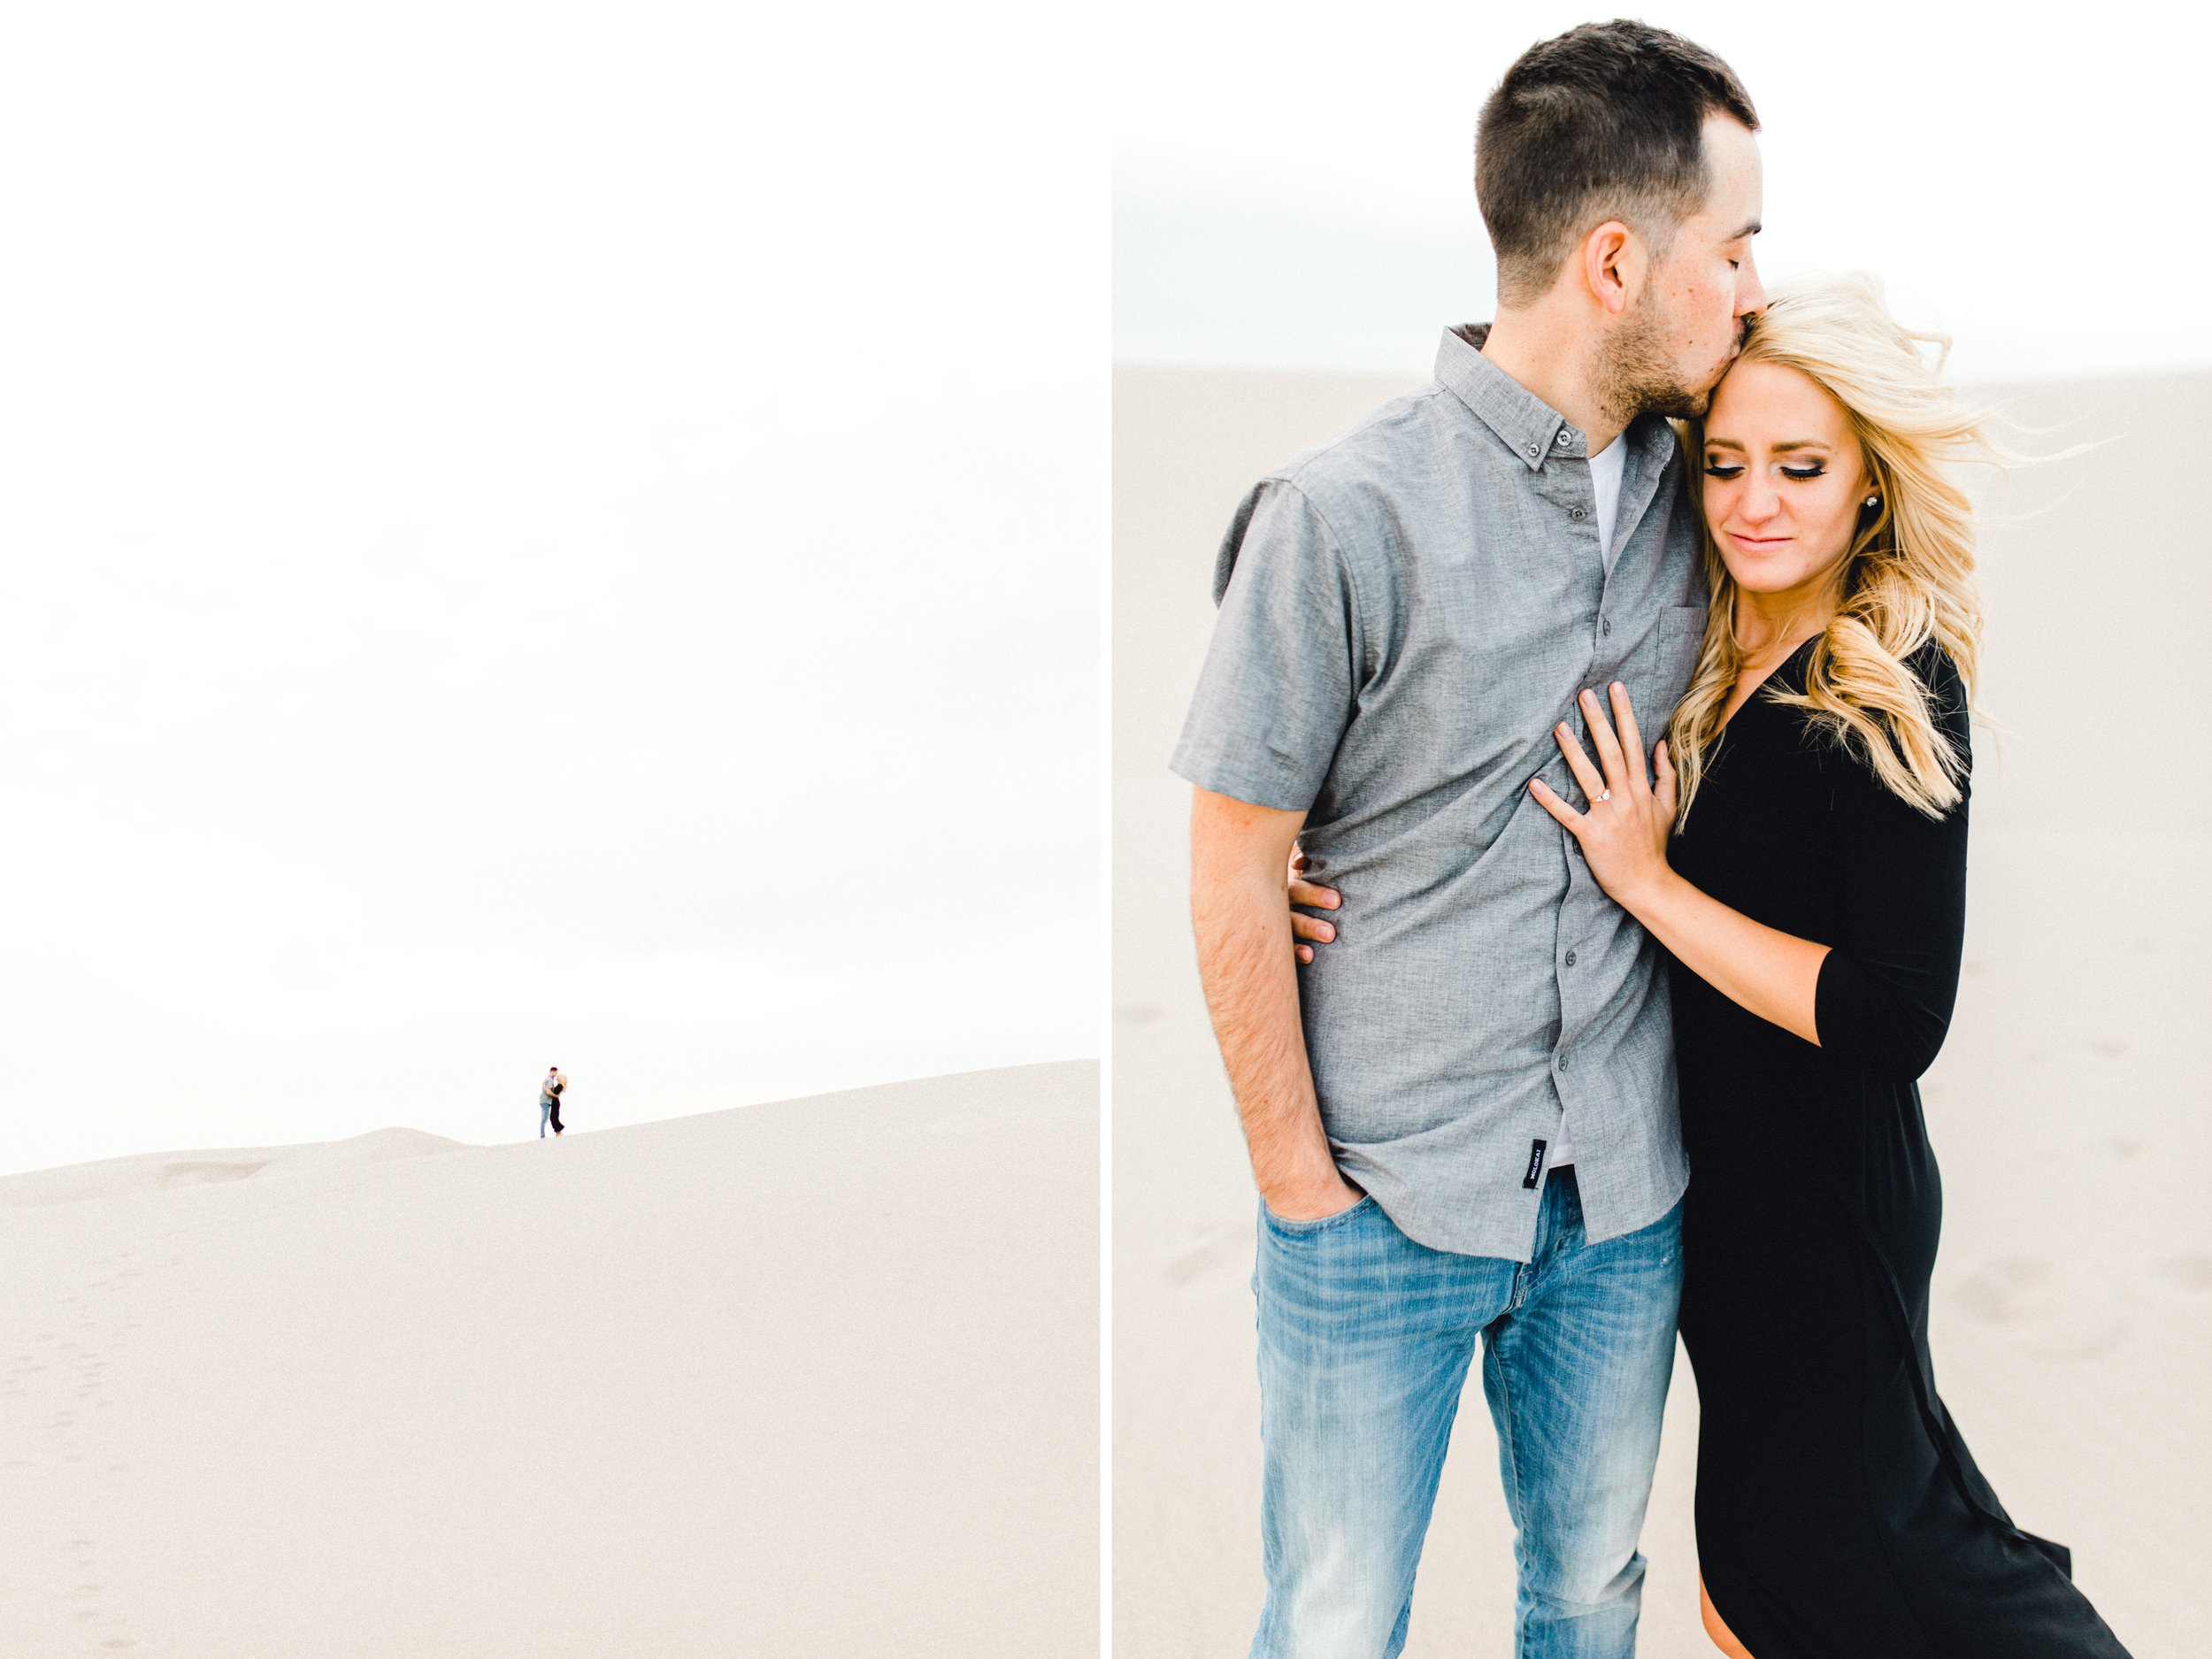 rexburg-idaho-sand-dunes-engagement-photographer-august-trevor9.jpg